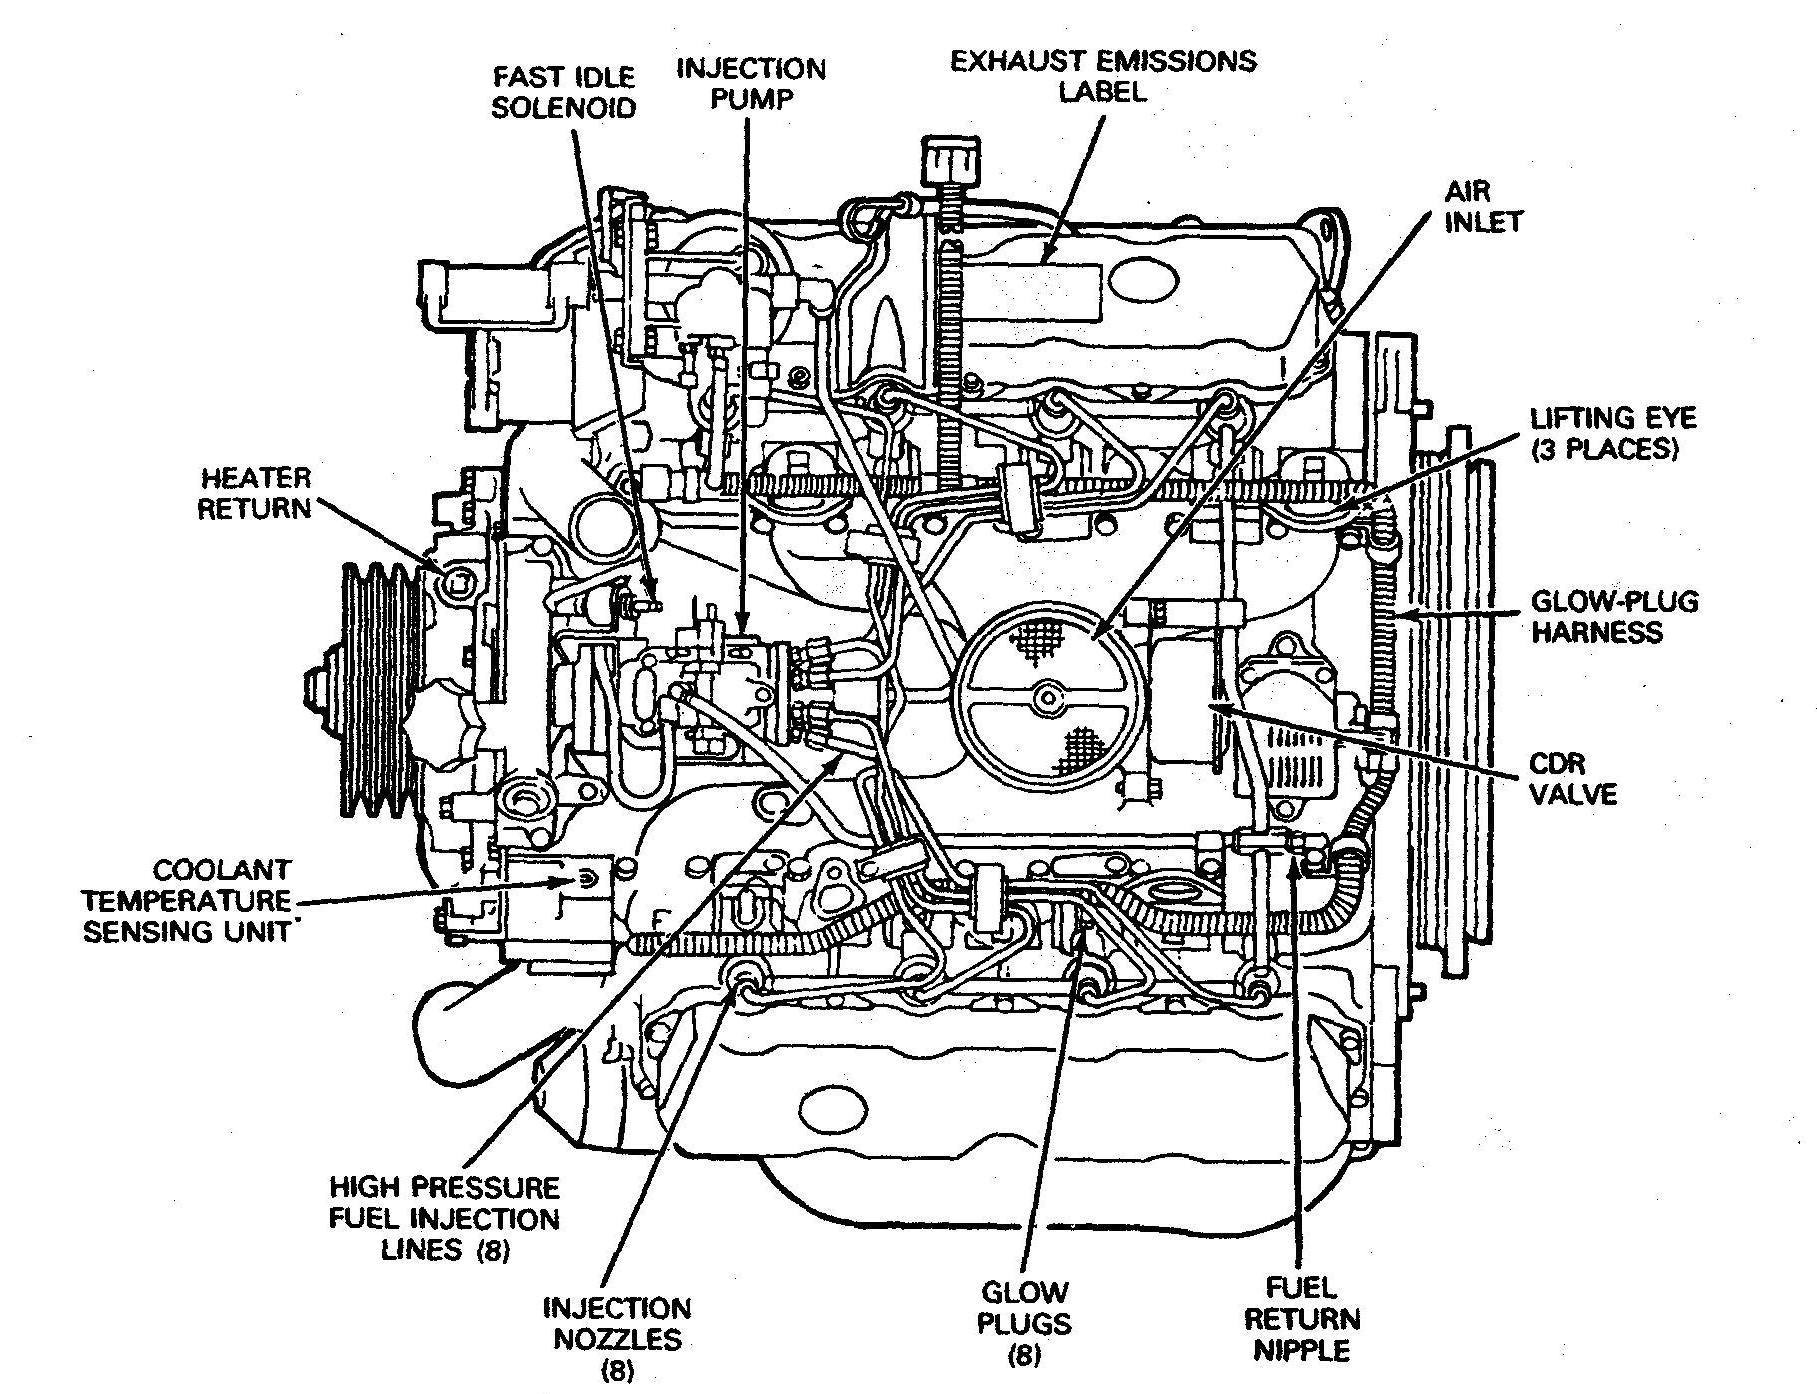 3 0 Ford V6 Engine Assembly Diagram - wiring diagram page bored-channel -  bored-channel.faishoppingconsvitol.it | 05 Ford Escape 3 0 Engine Wire Harness Diagram |  | Fai shopping con Svitol